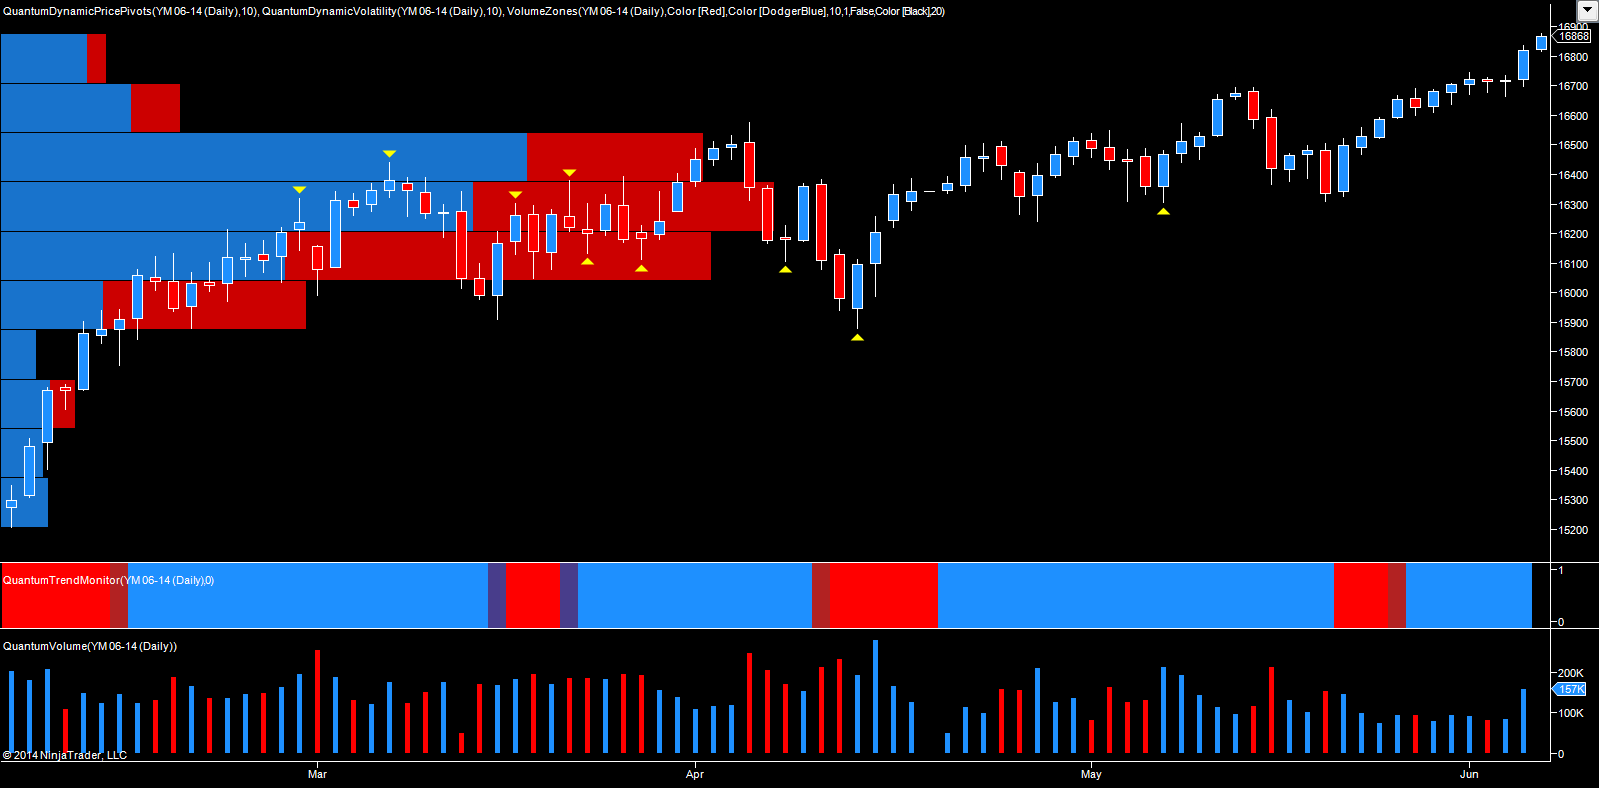 Emini YM June futures - daily chart